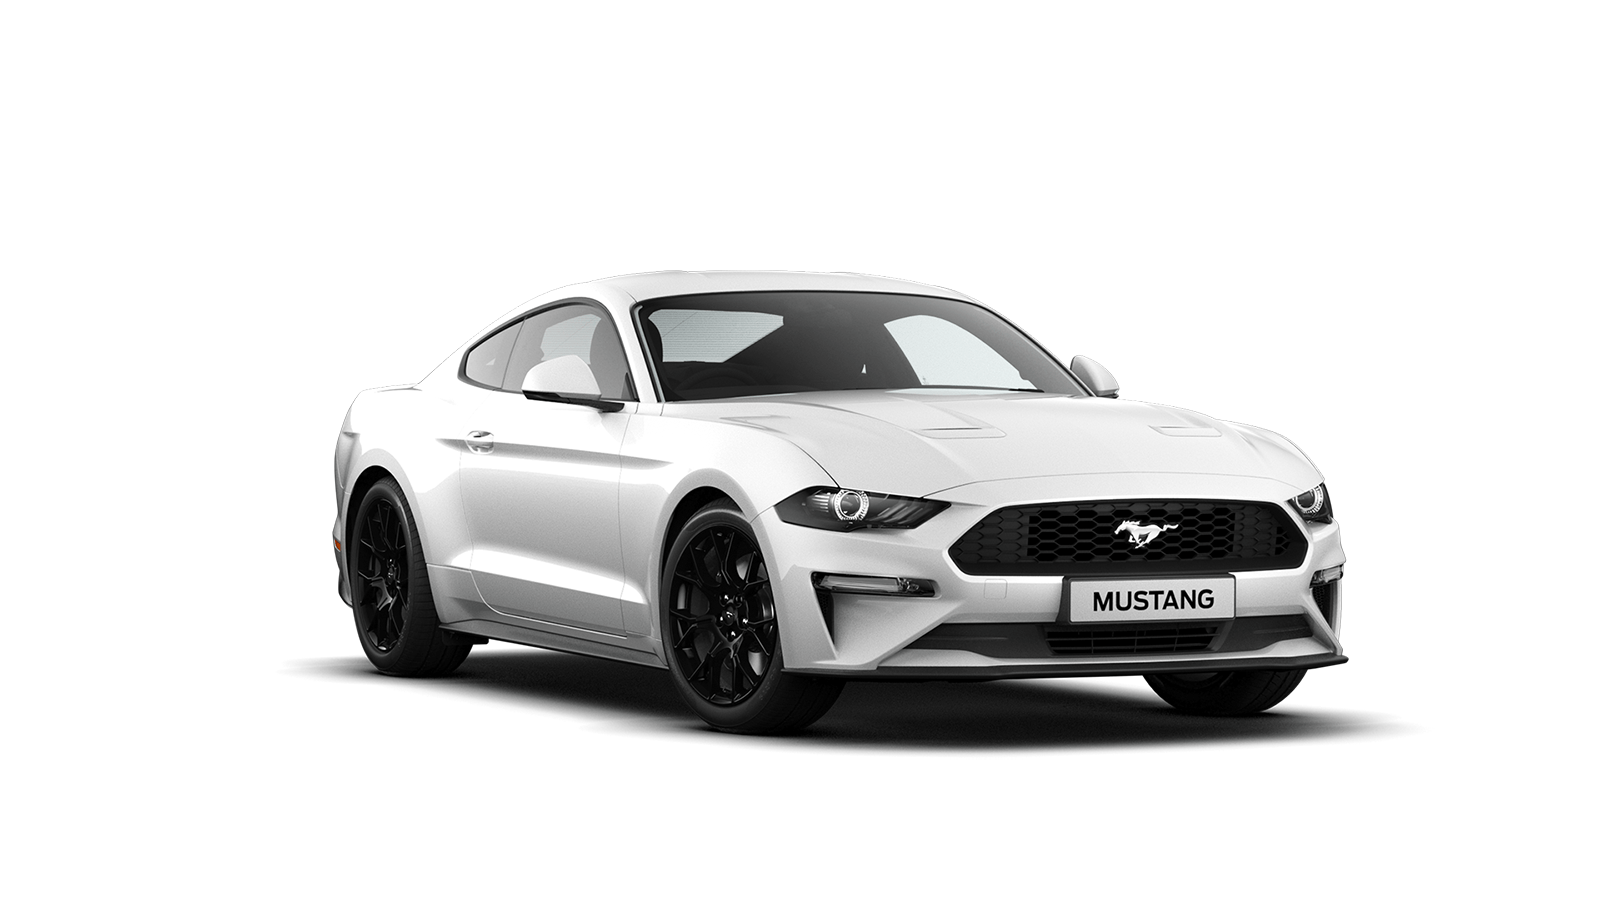 https://www.dealerinternet.co.uk/images/MUSTANG/2019/Fastback/2.3EcoBoost/OXFORD-WHITE.png